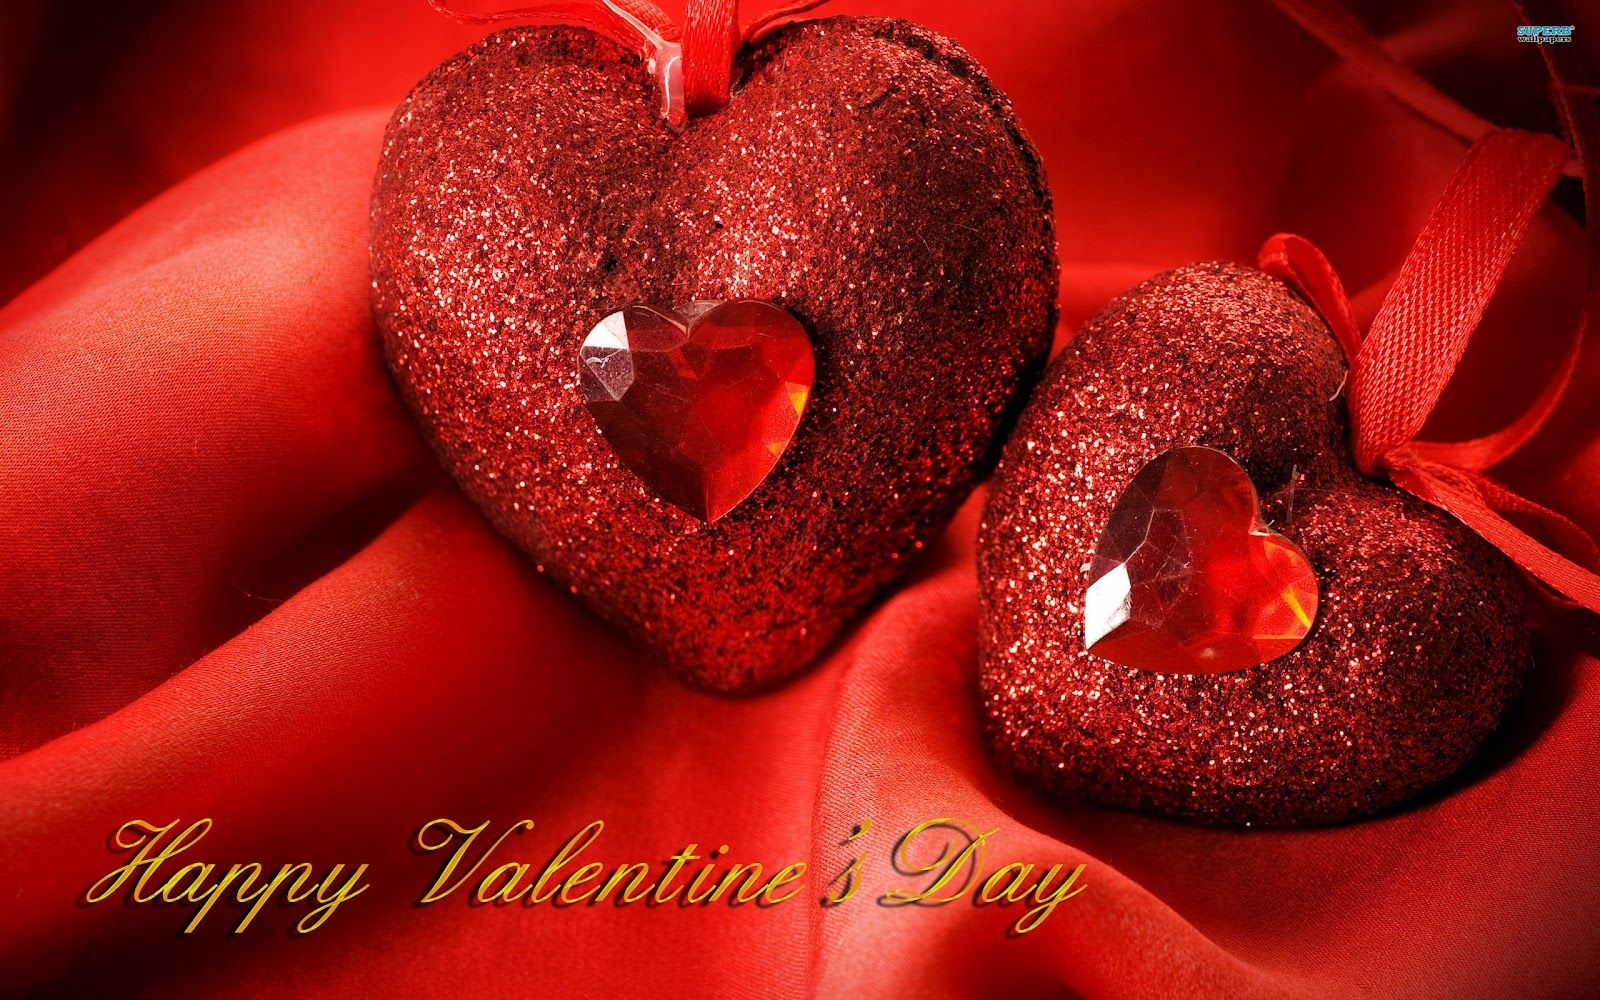 Valentines Day Wallpapers 2013 2014 Hd Pictures 2013 Wallpapers